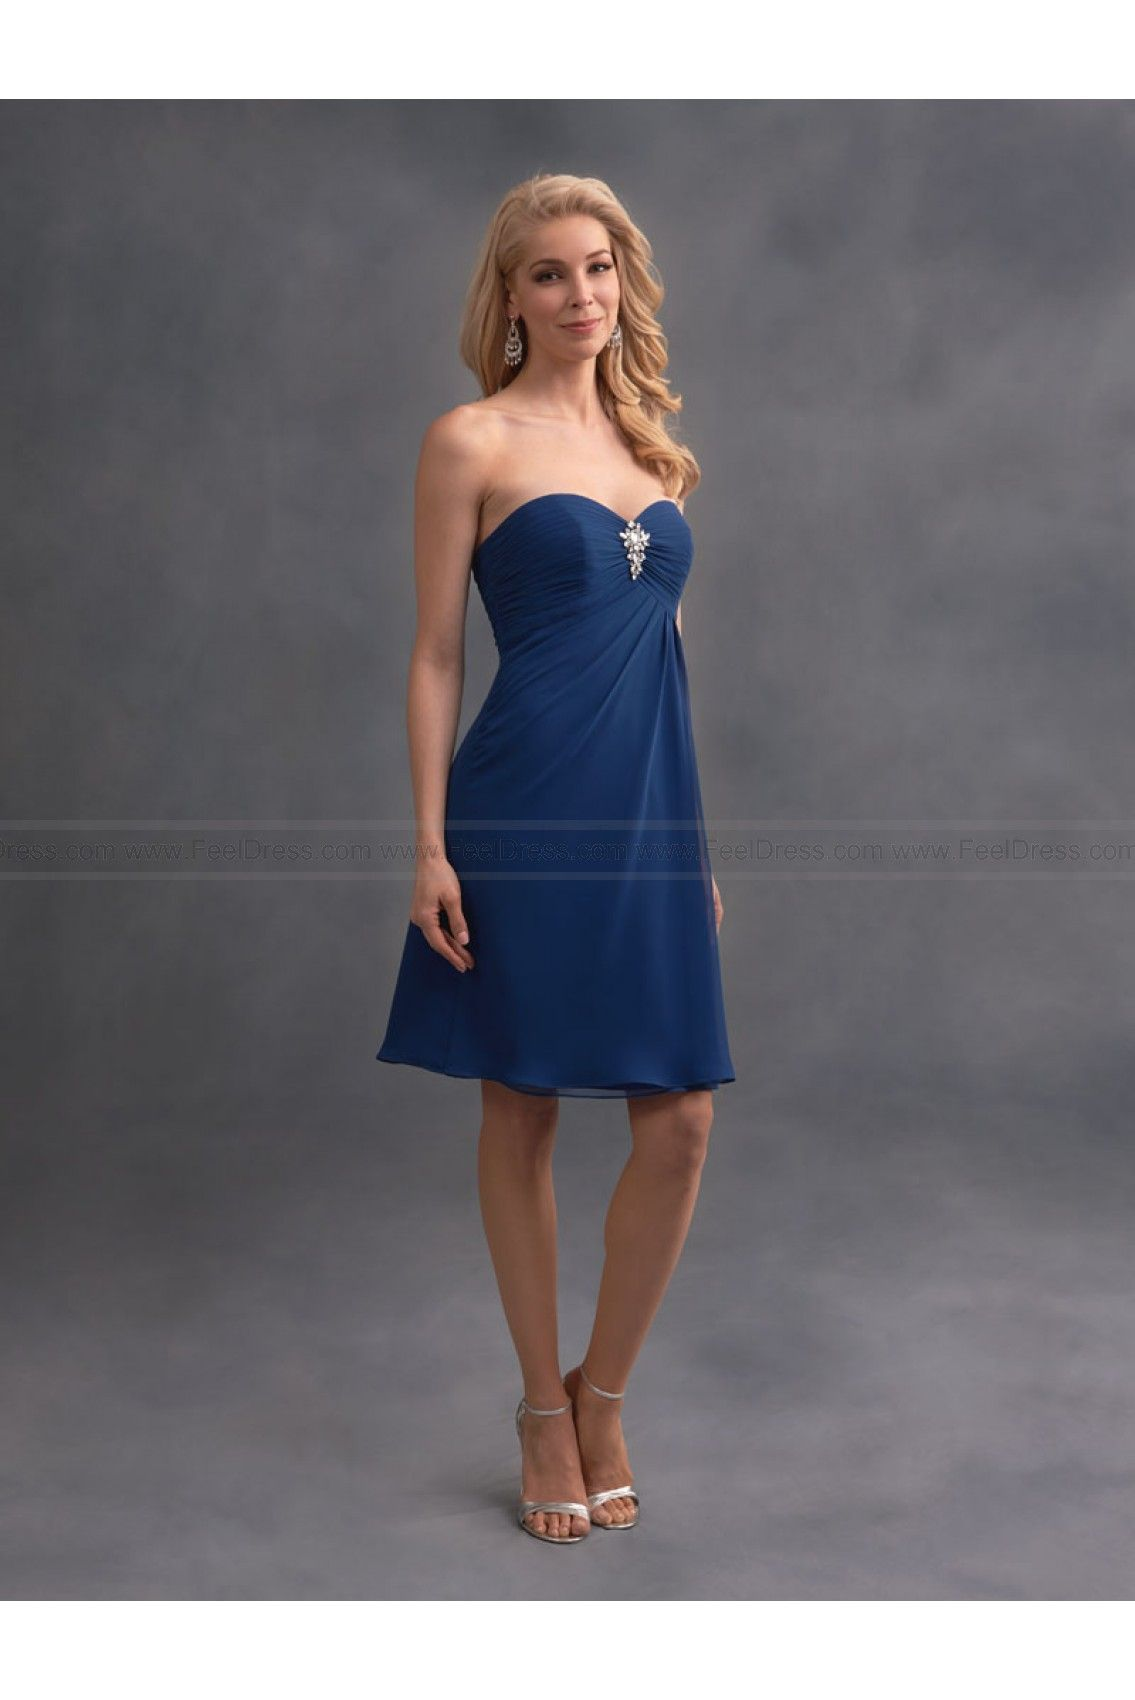 Alfred angelo bridesmaid dress style 7400s new alfred angelo alfred angelo bridesmaid dress style 7400s new strapless ombrellifo Image collections